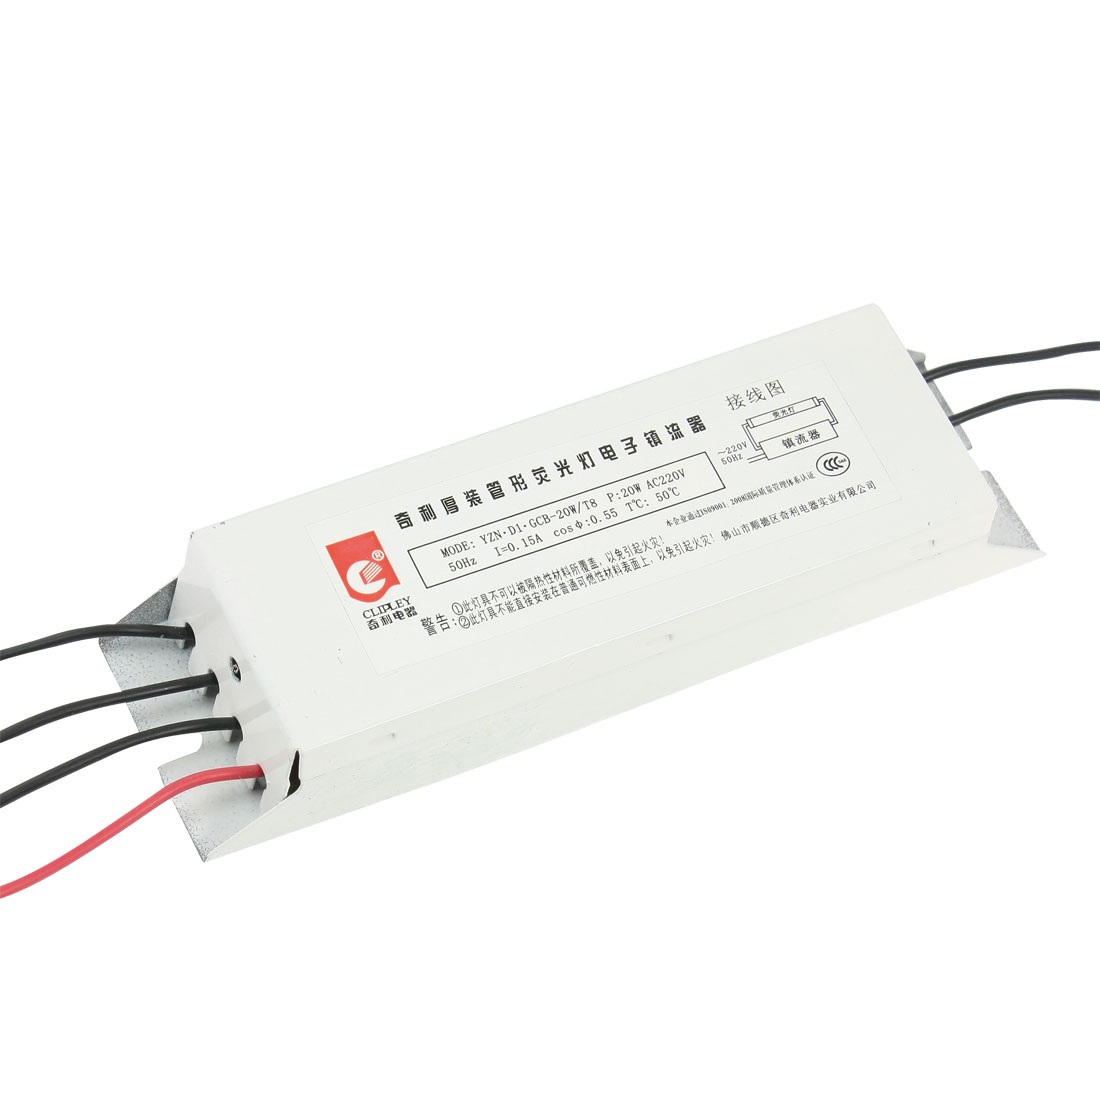 AC 220V 0.15A Wired Alloy Shell 6 Terminals Fluorescent Light Ballasts 20W